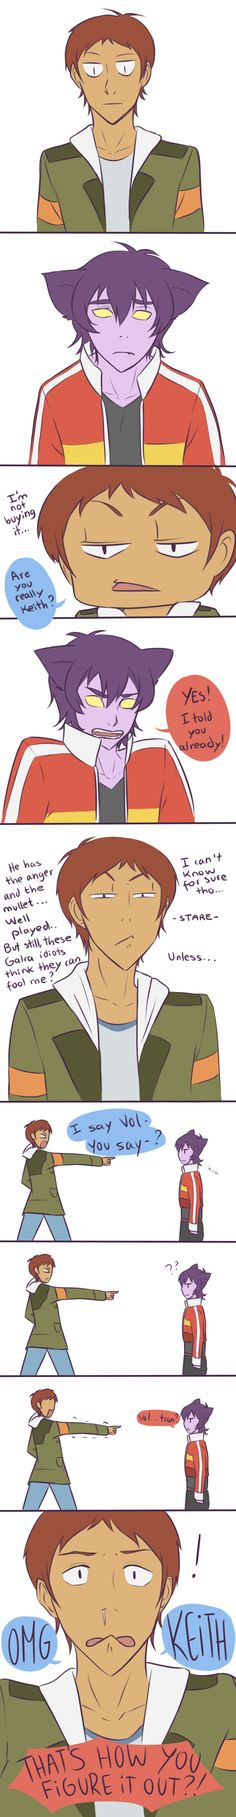 Keith is that you? by Kakty